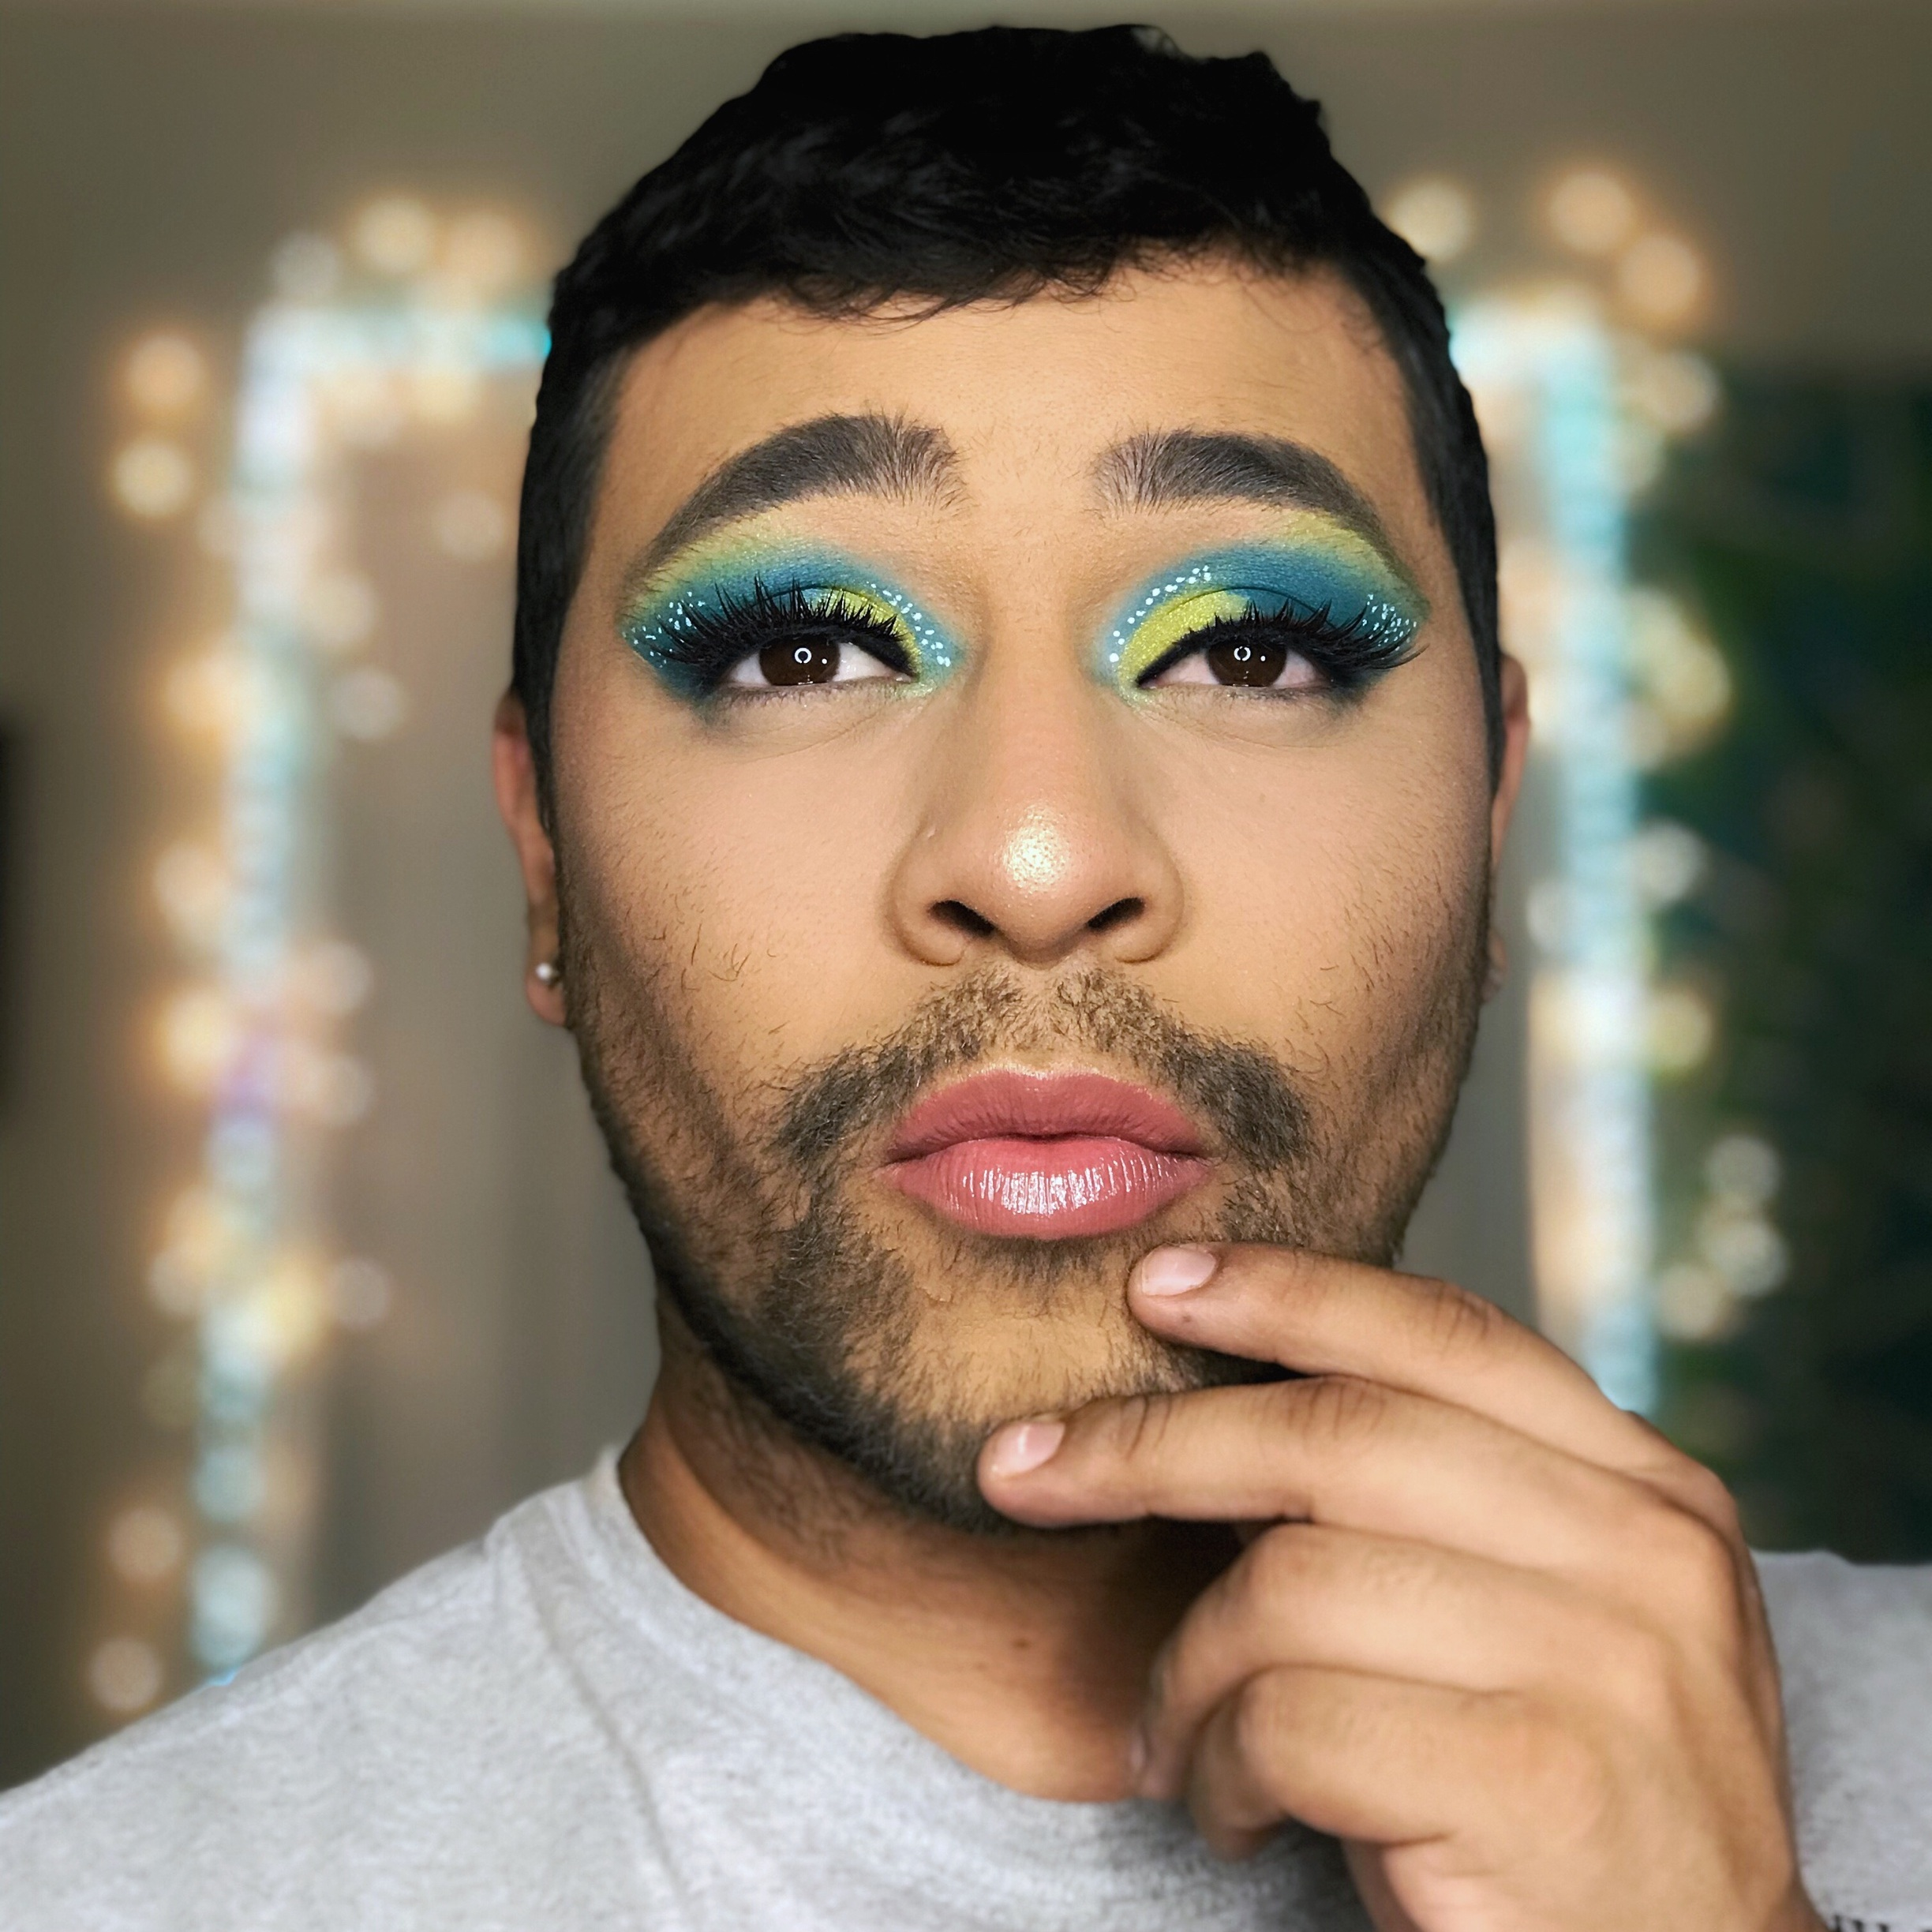 """@kingjbeauty - Discount Code:""""kingjbeauty""""Melanin infused Black beauty boy. I'm the beauty community's step dad. Just trying to create spaces of love and growth.-Josh"""